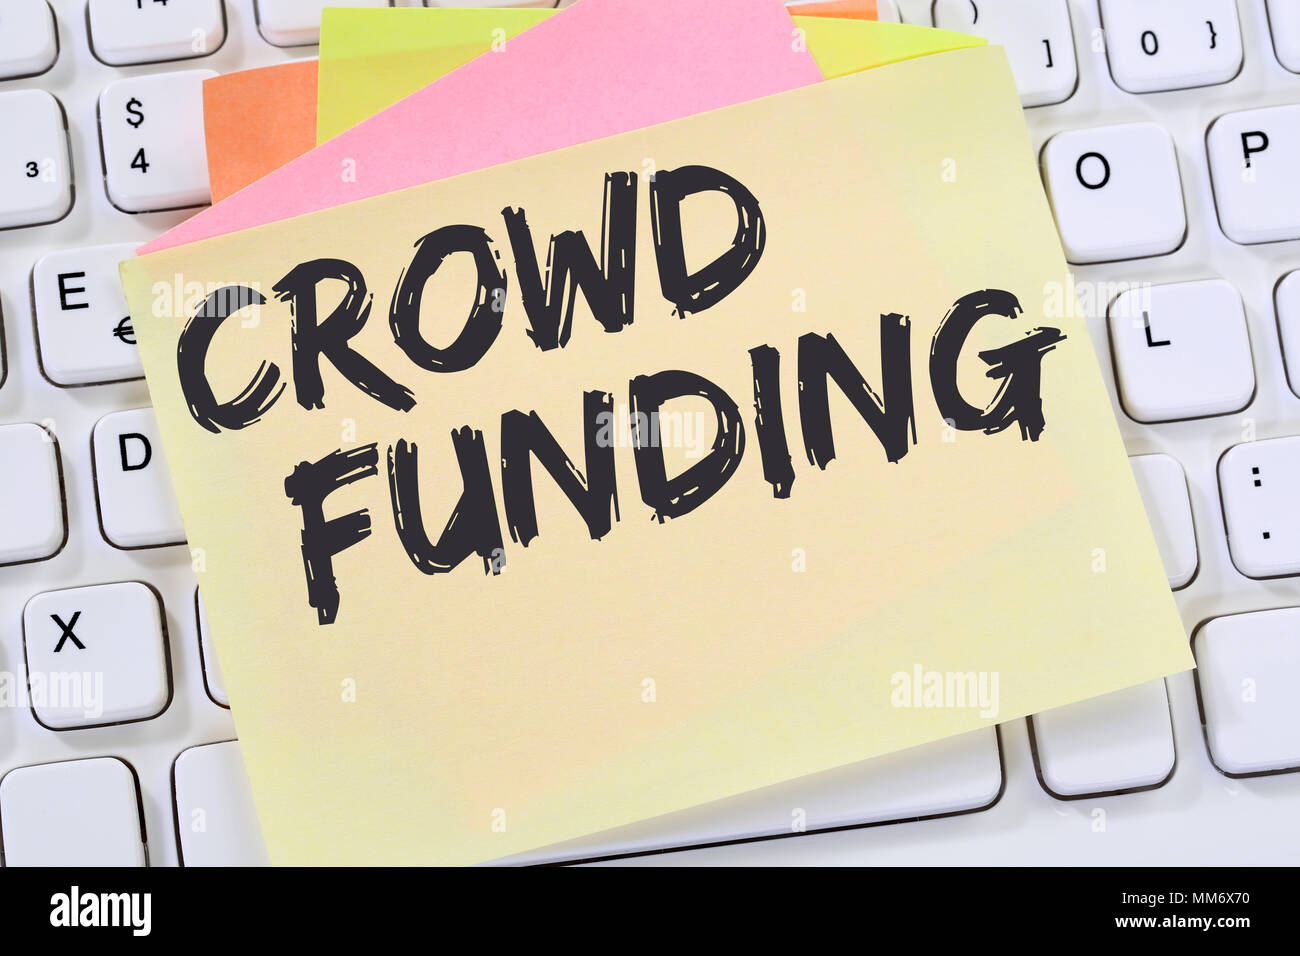 Crowd funding crowdfunding collecting money online investment internet business concept note paper desk computer keyboard - Stock Image